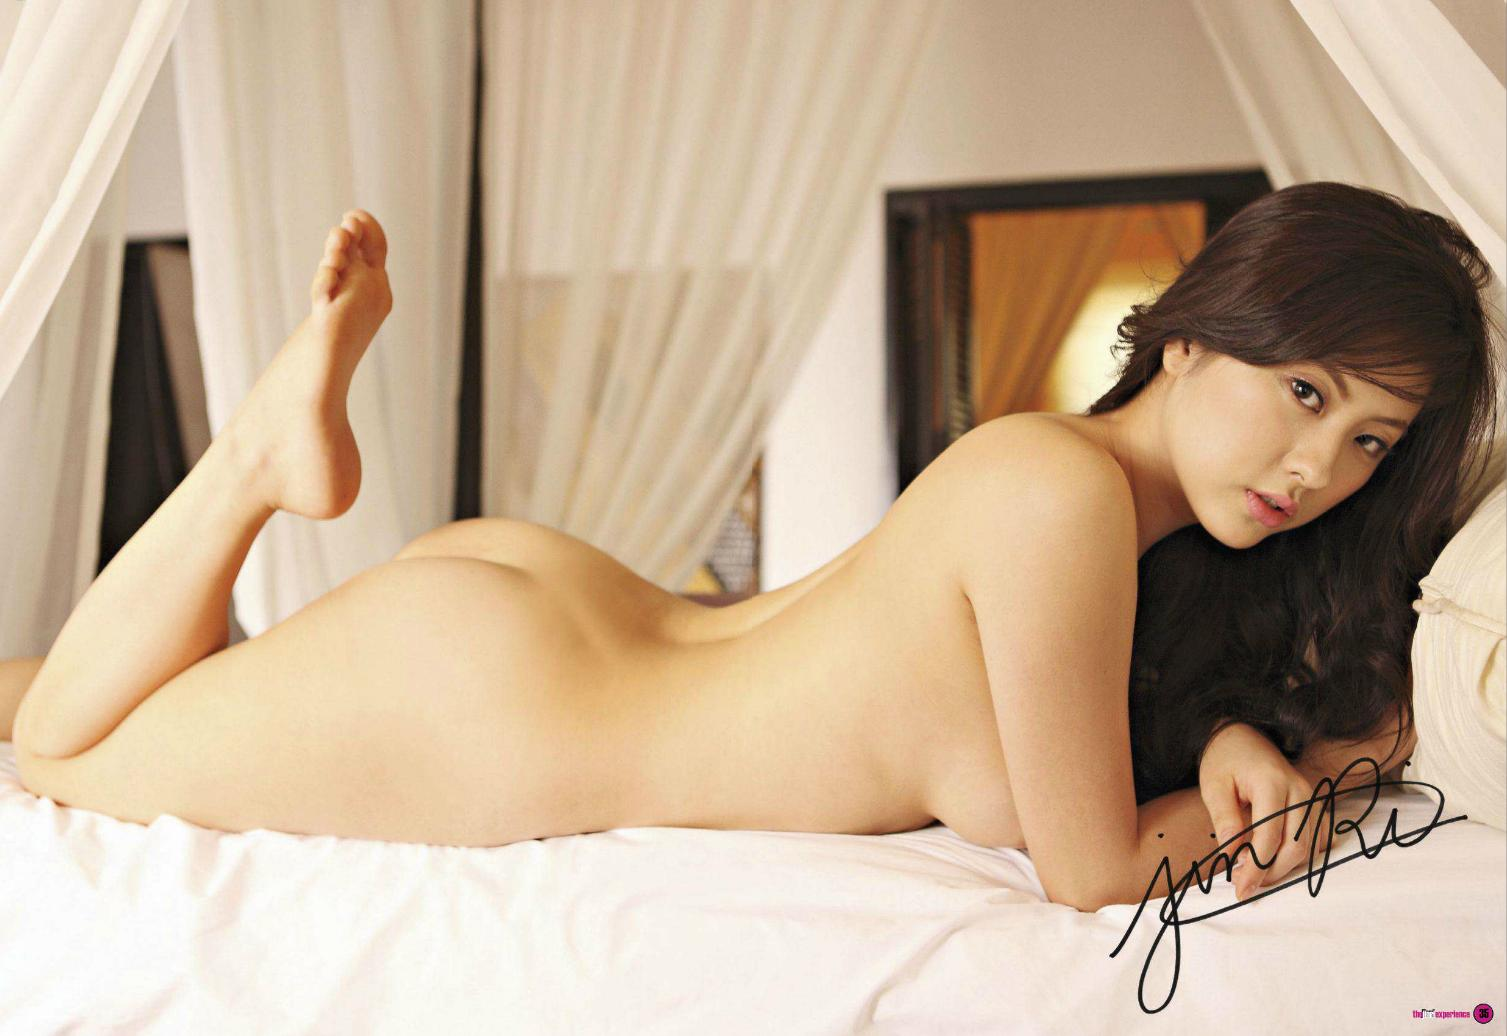 Korean most sexiest women nude porn